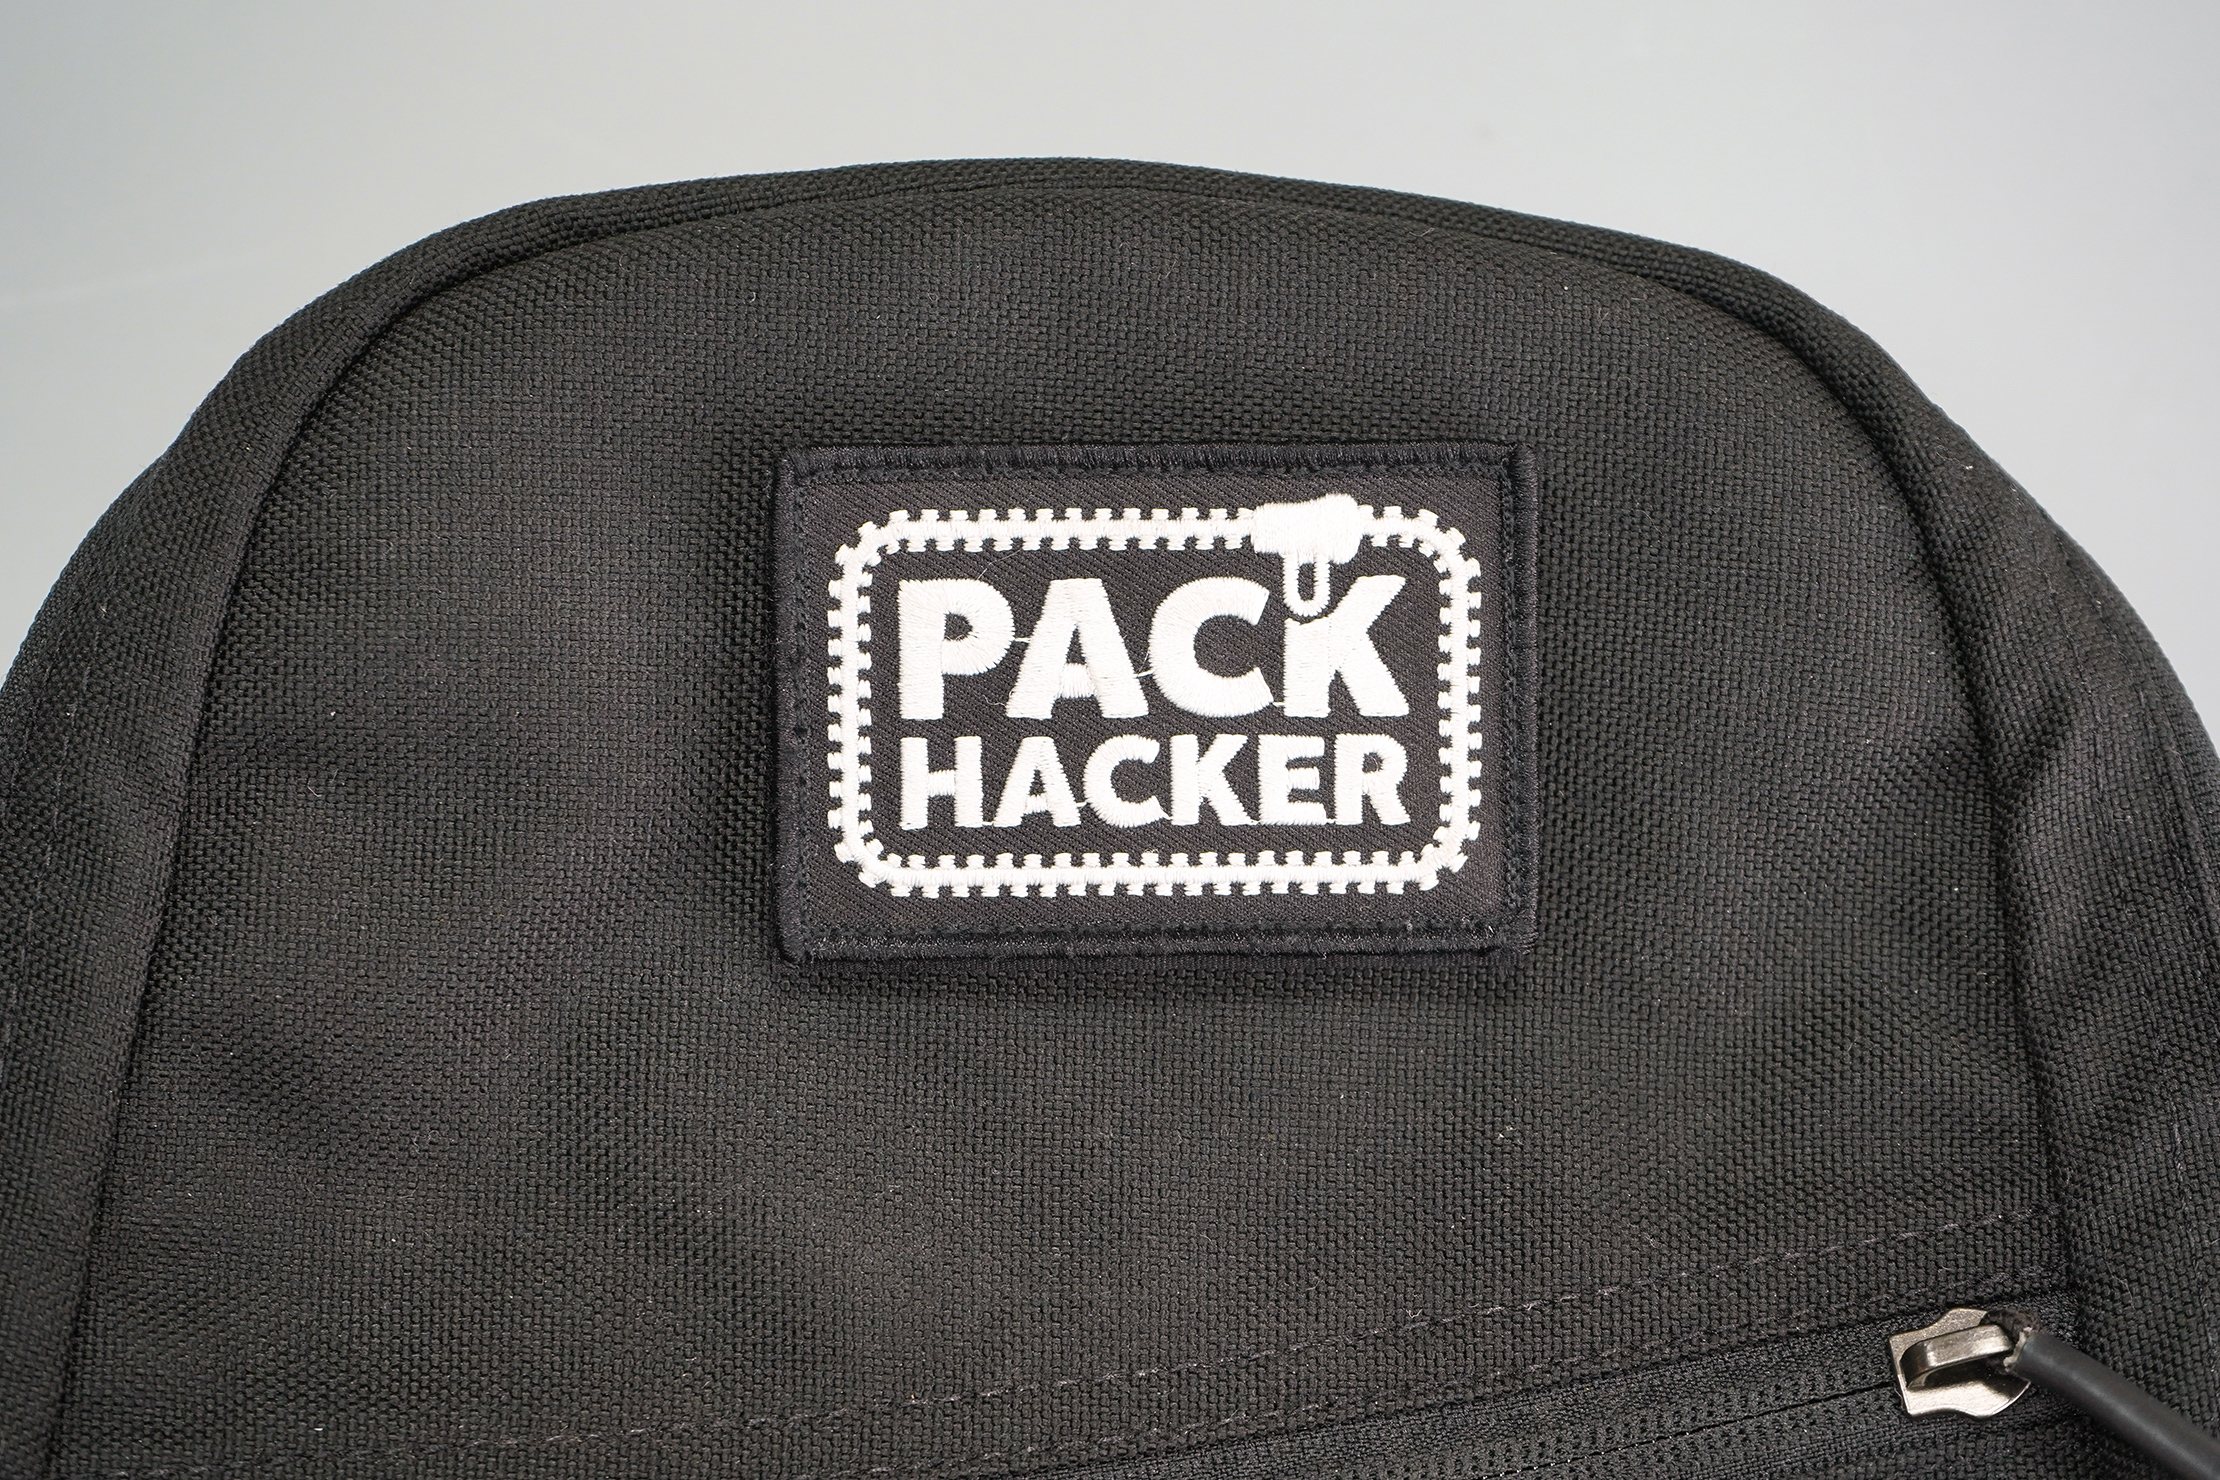 GORUCK Bullet Ruck 10L With Pack Hacker Patch